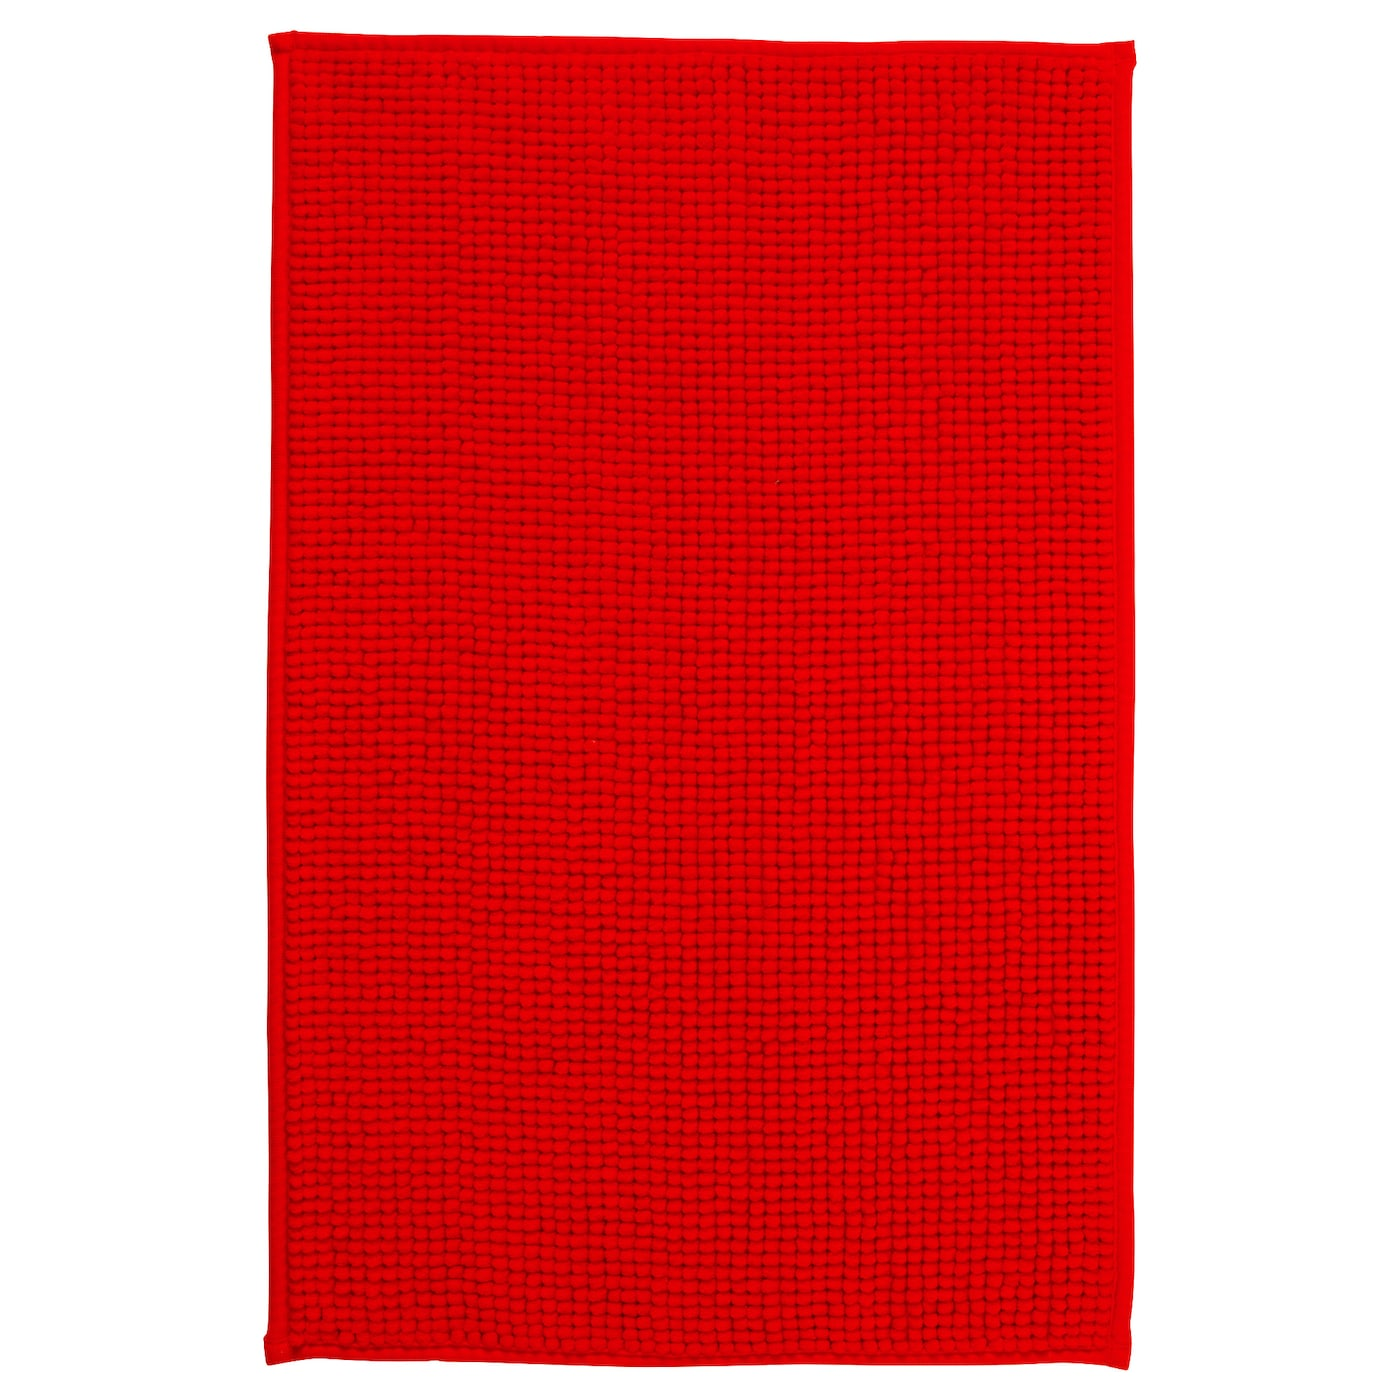 badaren bath mat bright red 40x60 cm ikea. Black Bedroom Furniture Sets. Home Design Ideas